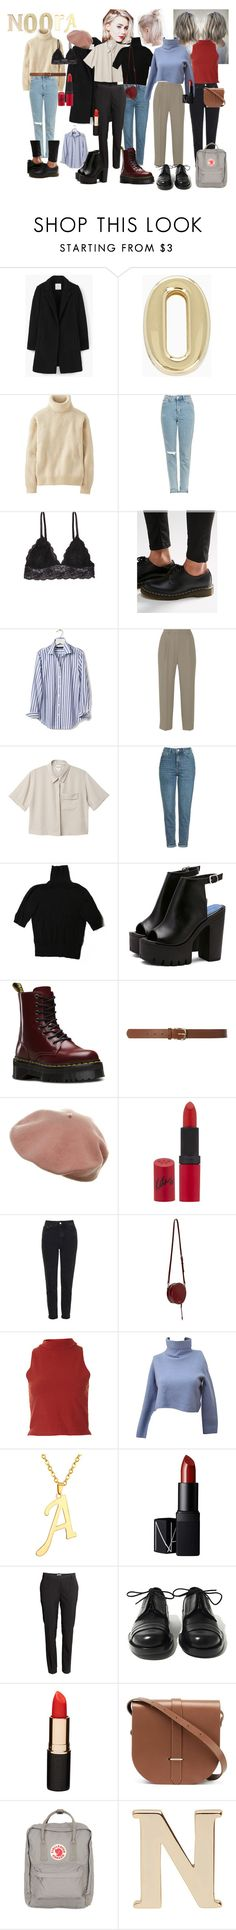 """Noora Sætre from Skam"" by aimeecombe on Polyvore featuring MANGO, BCBGeneration, Uniqlo, Topshop, Humble Chic, Dr. Martens, Banana Republic, Vanessa Bruno, Monki and H&M"